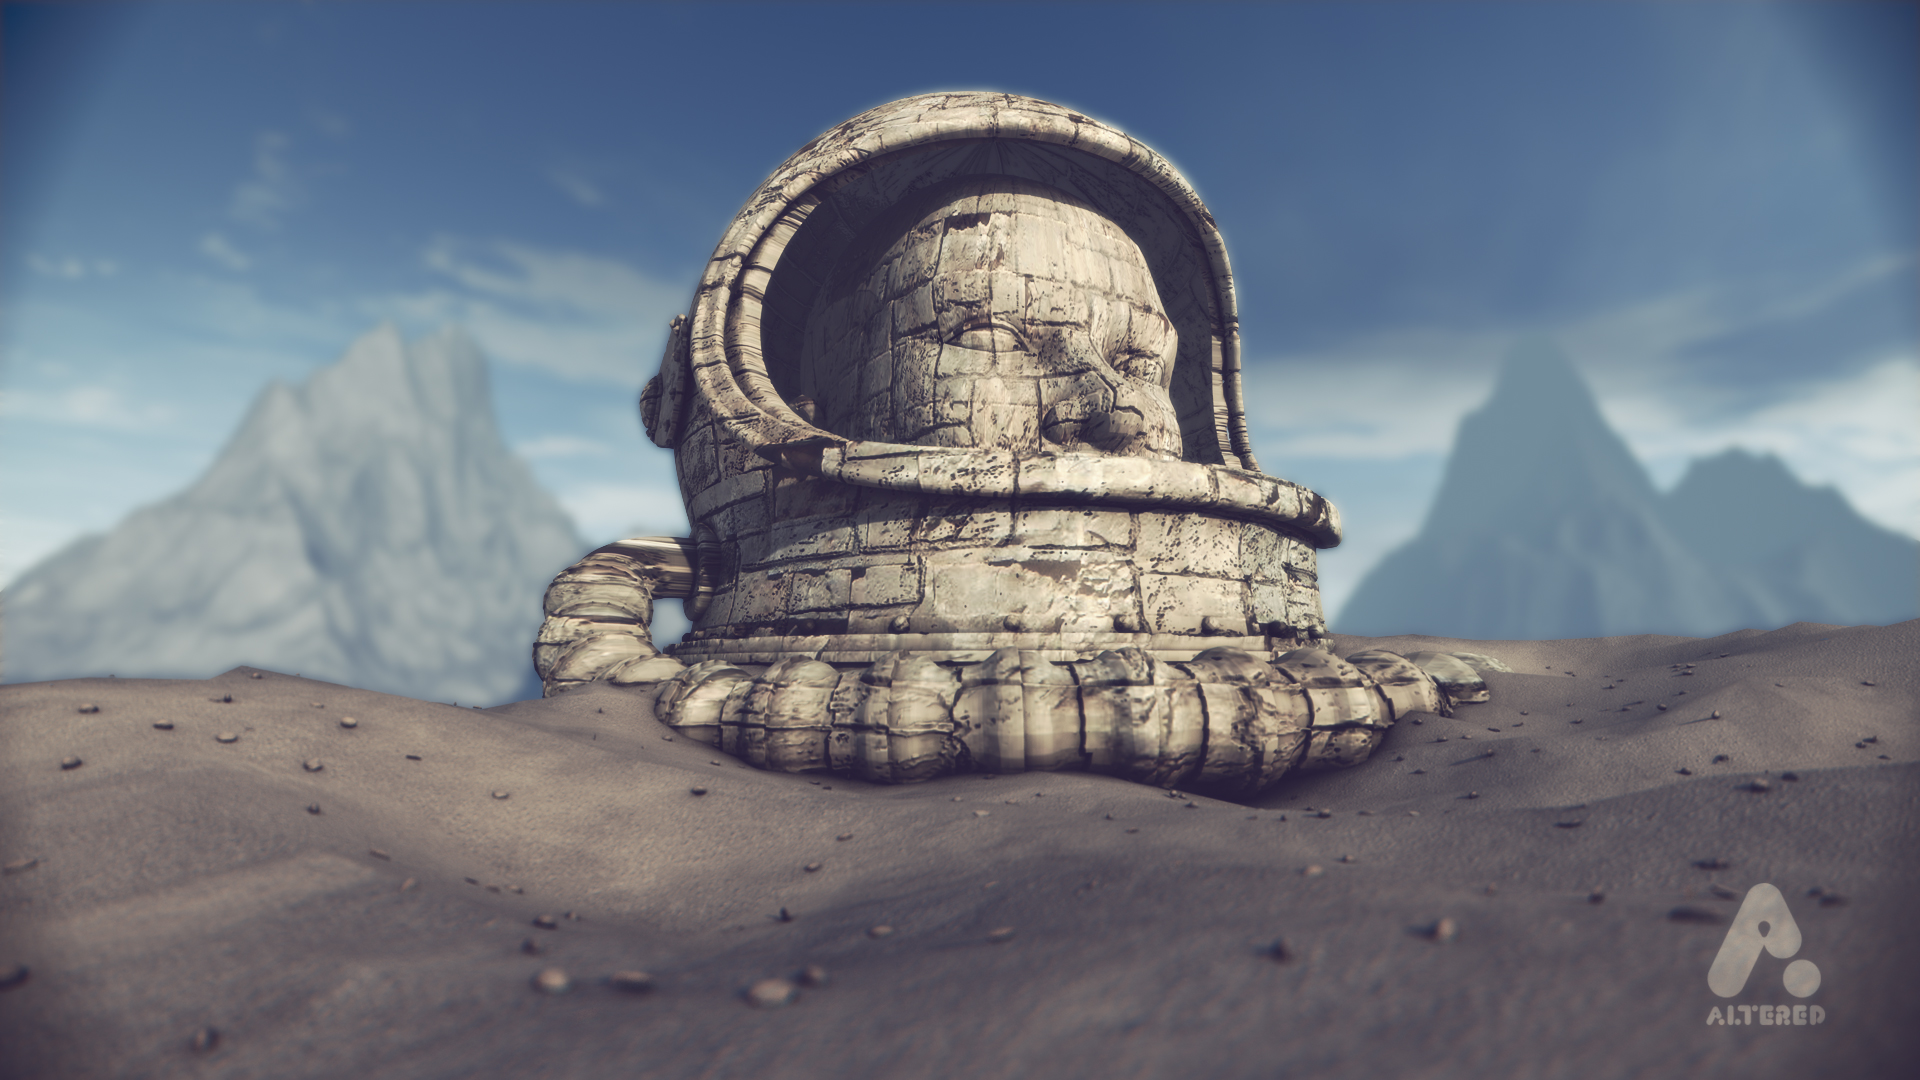 Planet 42, retro stone spaceman helmet in the desert, CG 3D motion graphics animated short film, design animation art direction altered.tv London